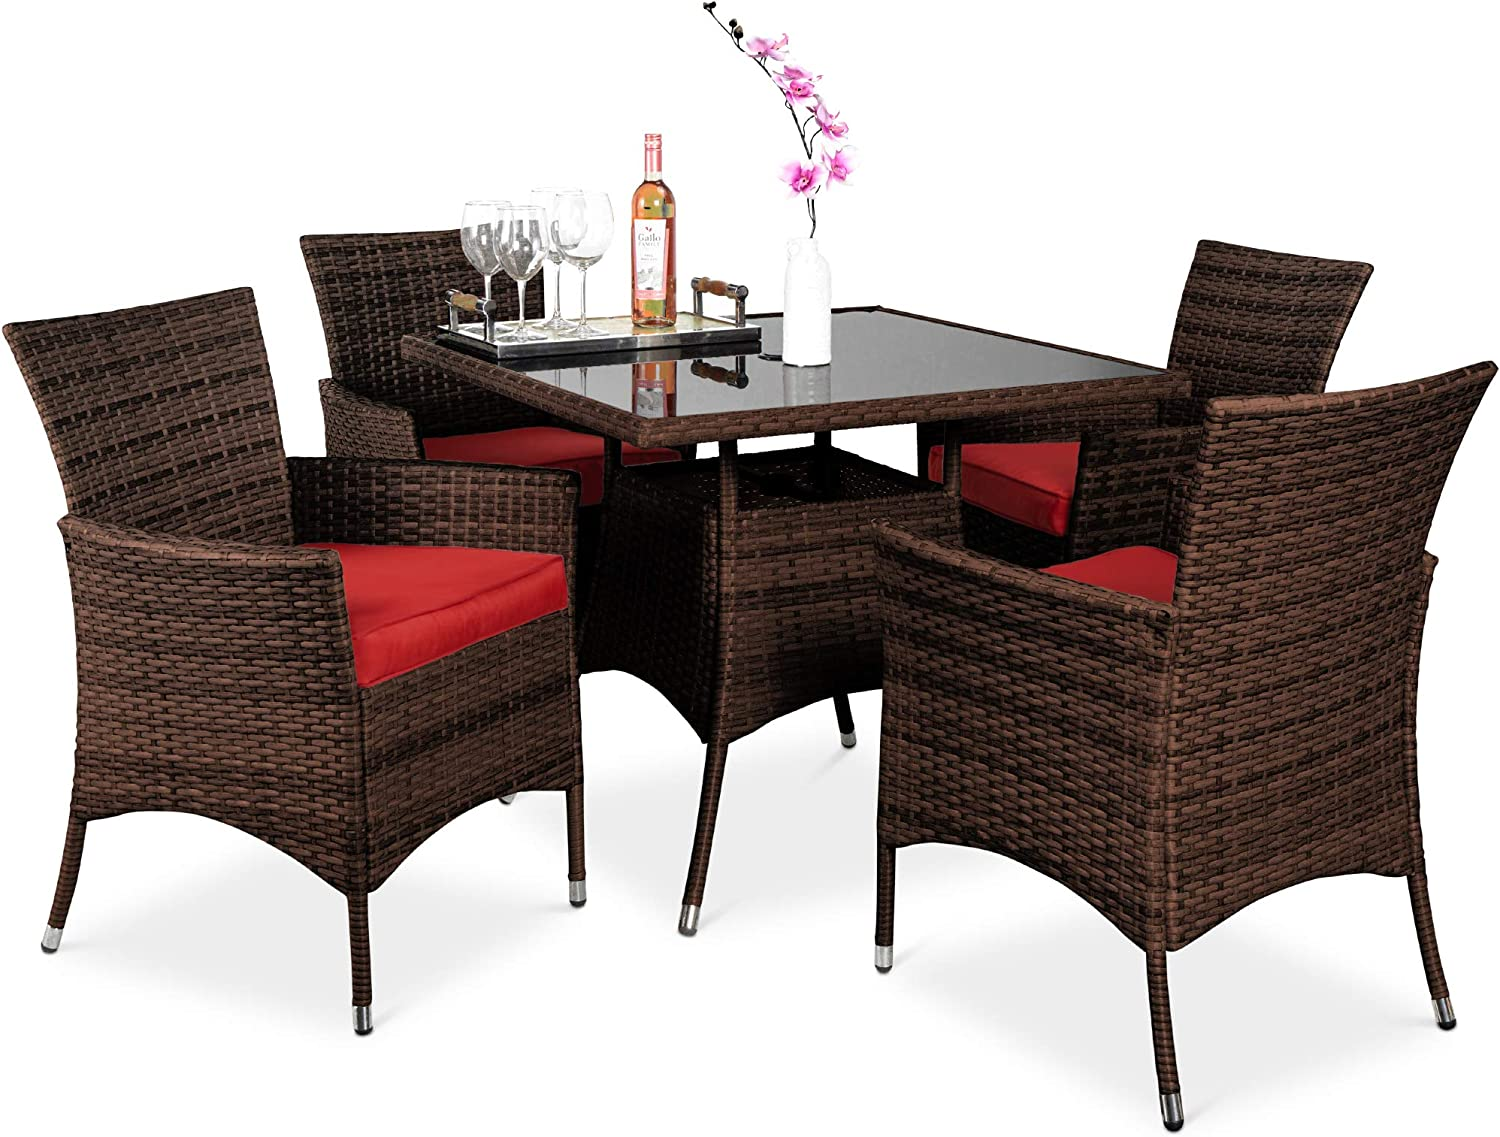 Best Choice Products 5-Piece Indoor Outdoor Wicker Dining Set Furniture for Patio, Backyard w/Square Glass Tabletop, Umbrella Cutout, 4 Chairs - Red